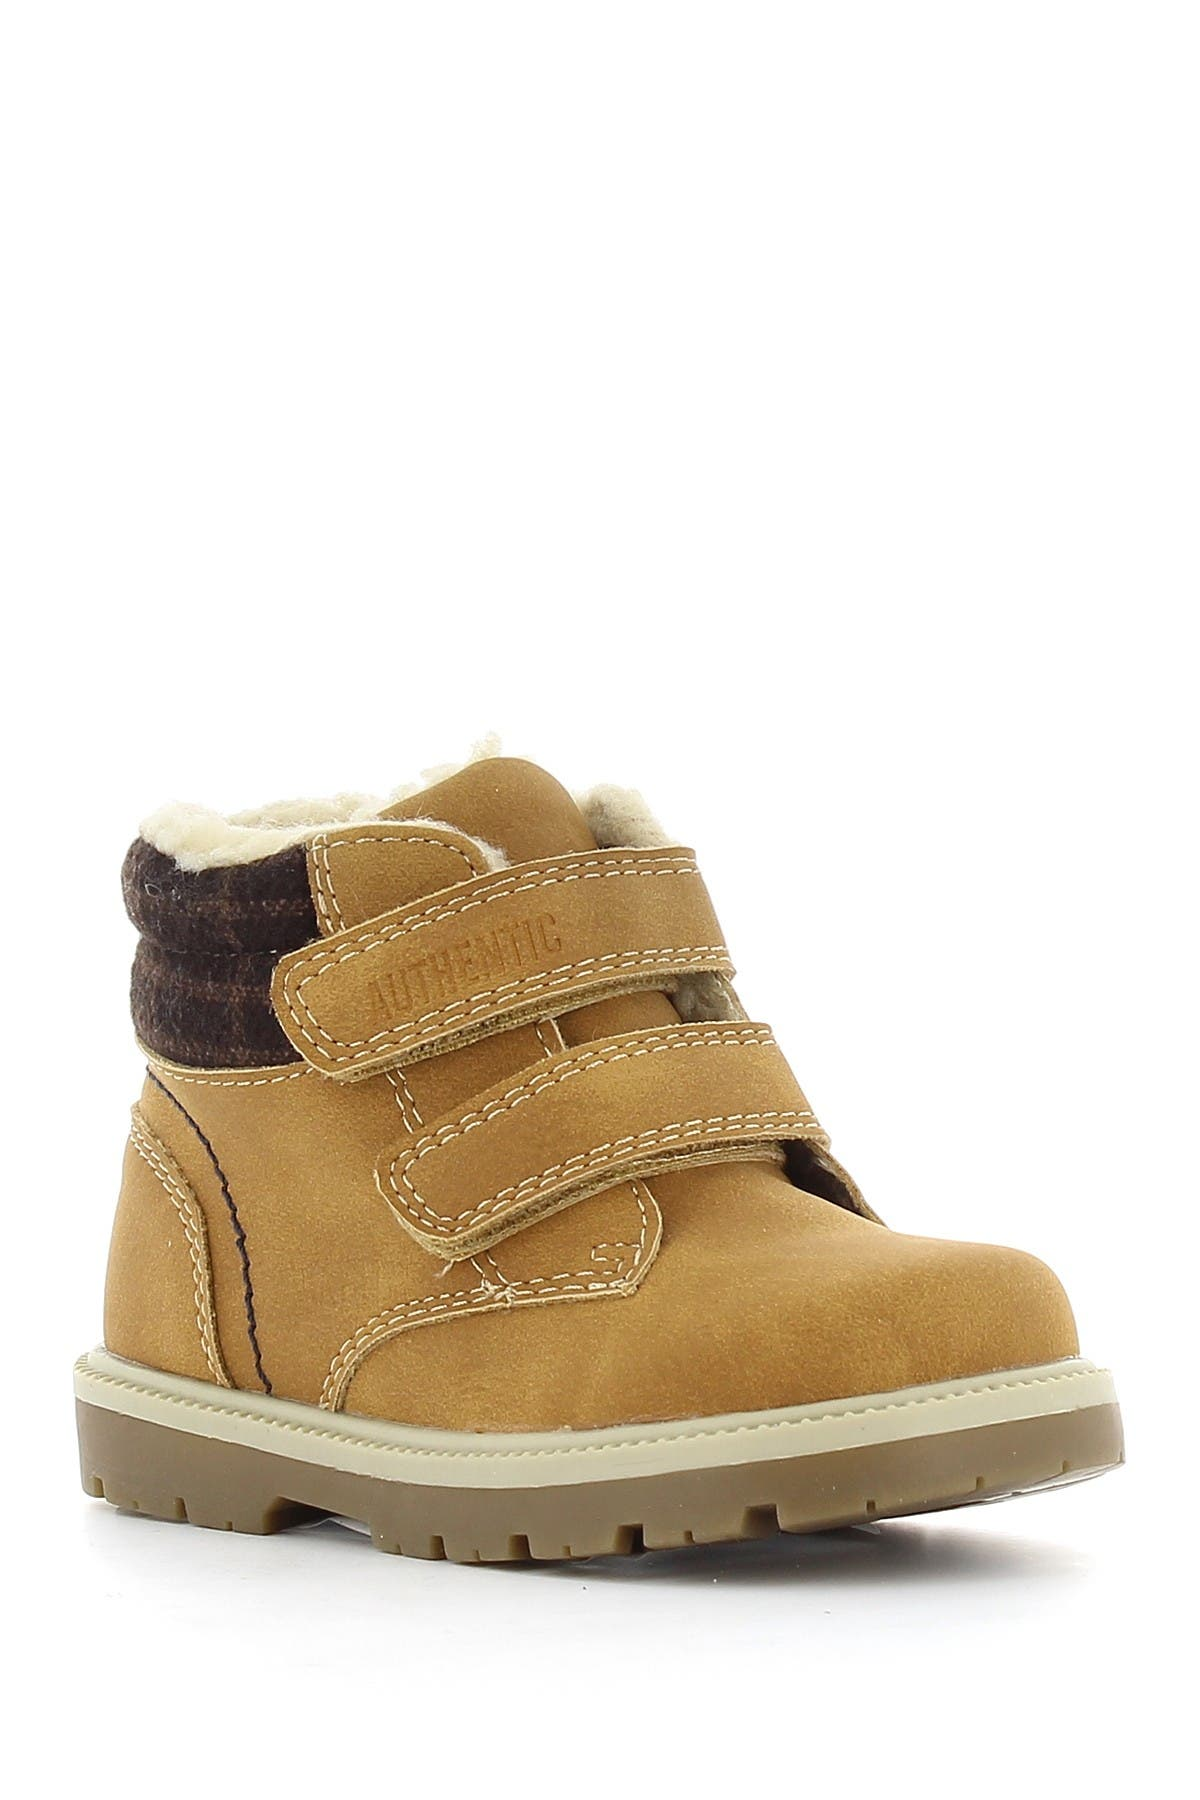 Image of SPROX Lil' Hiker Sport Boot